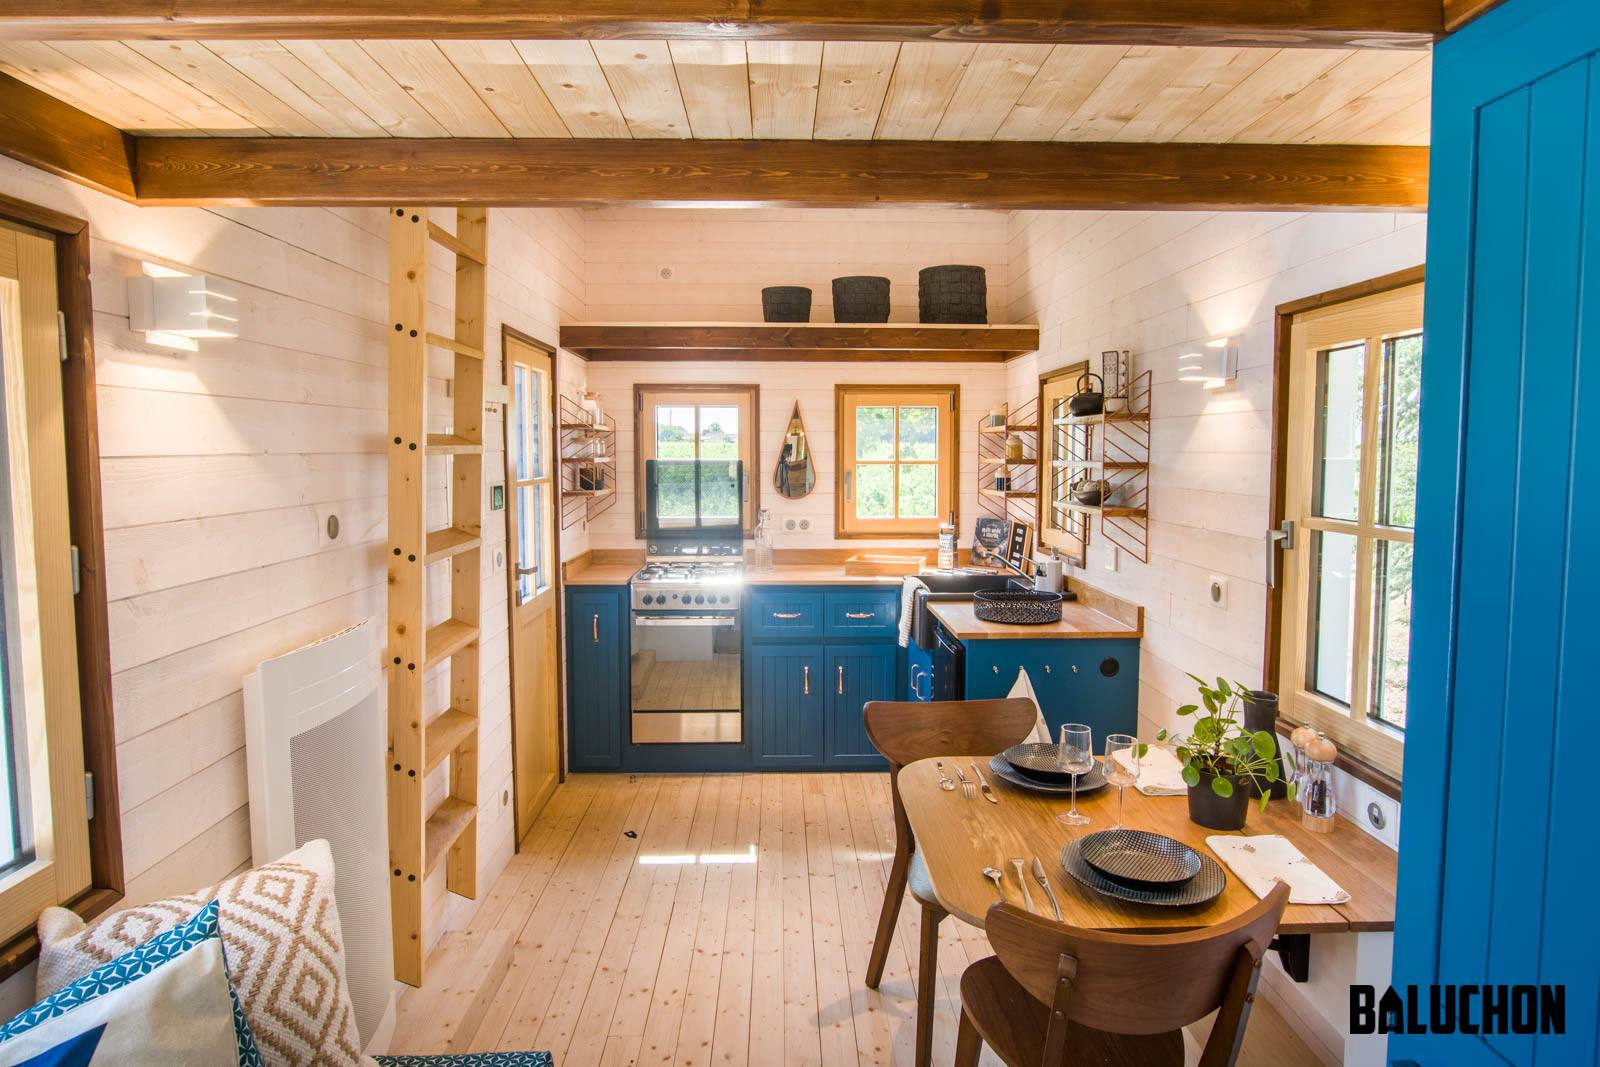 Tiny house gives chef room for creativity in the kitchen